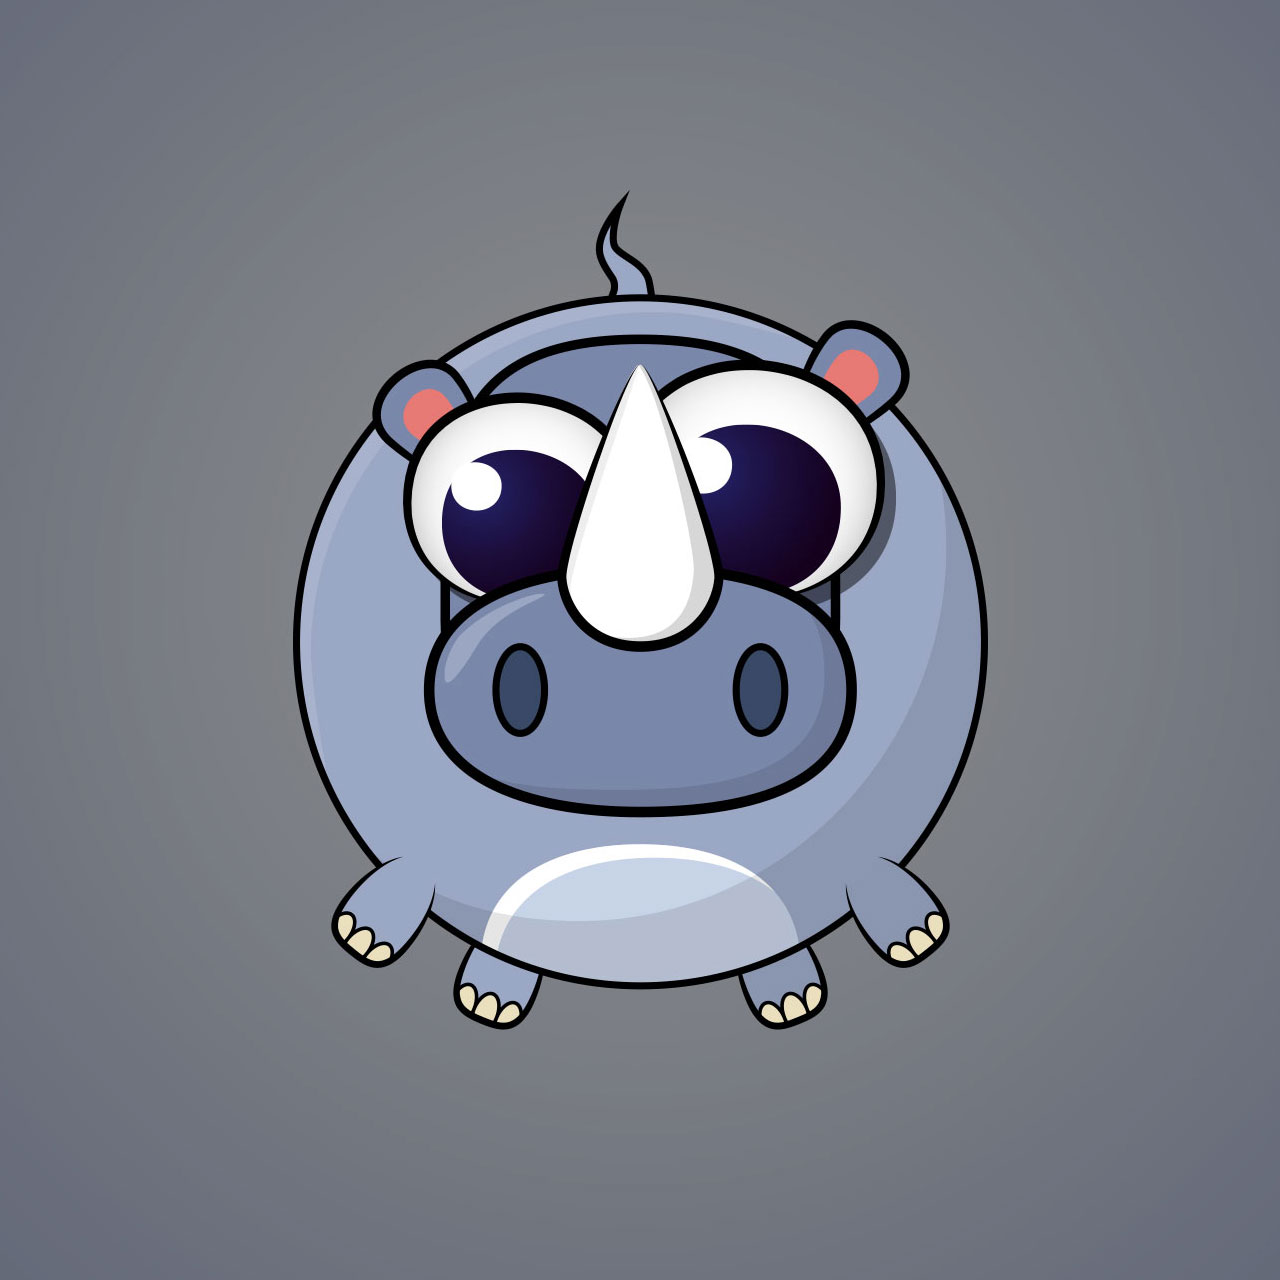 Hippo Minimal Vector Character Design For A Casual Mobile Game